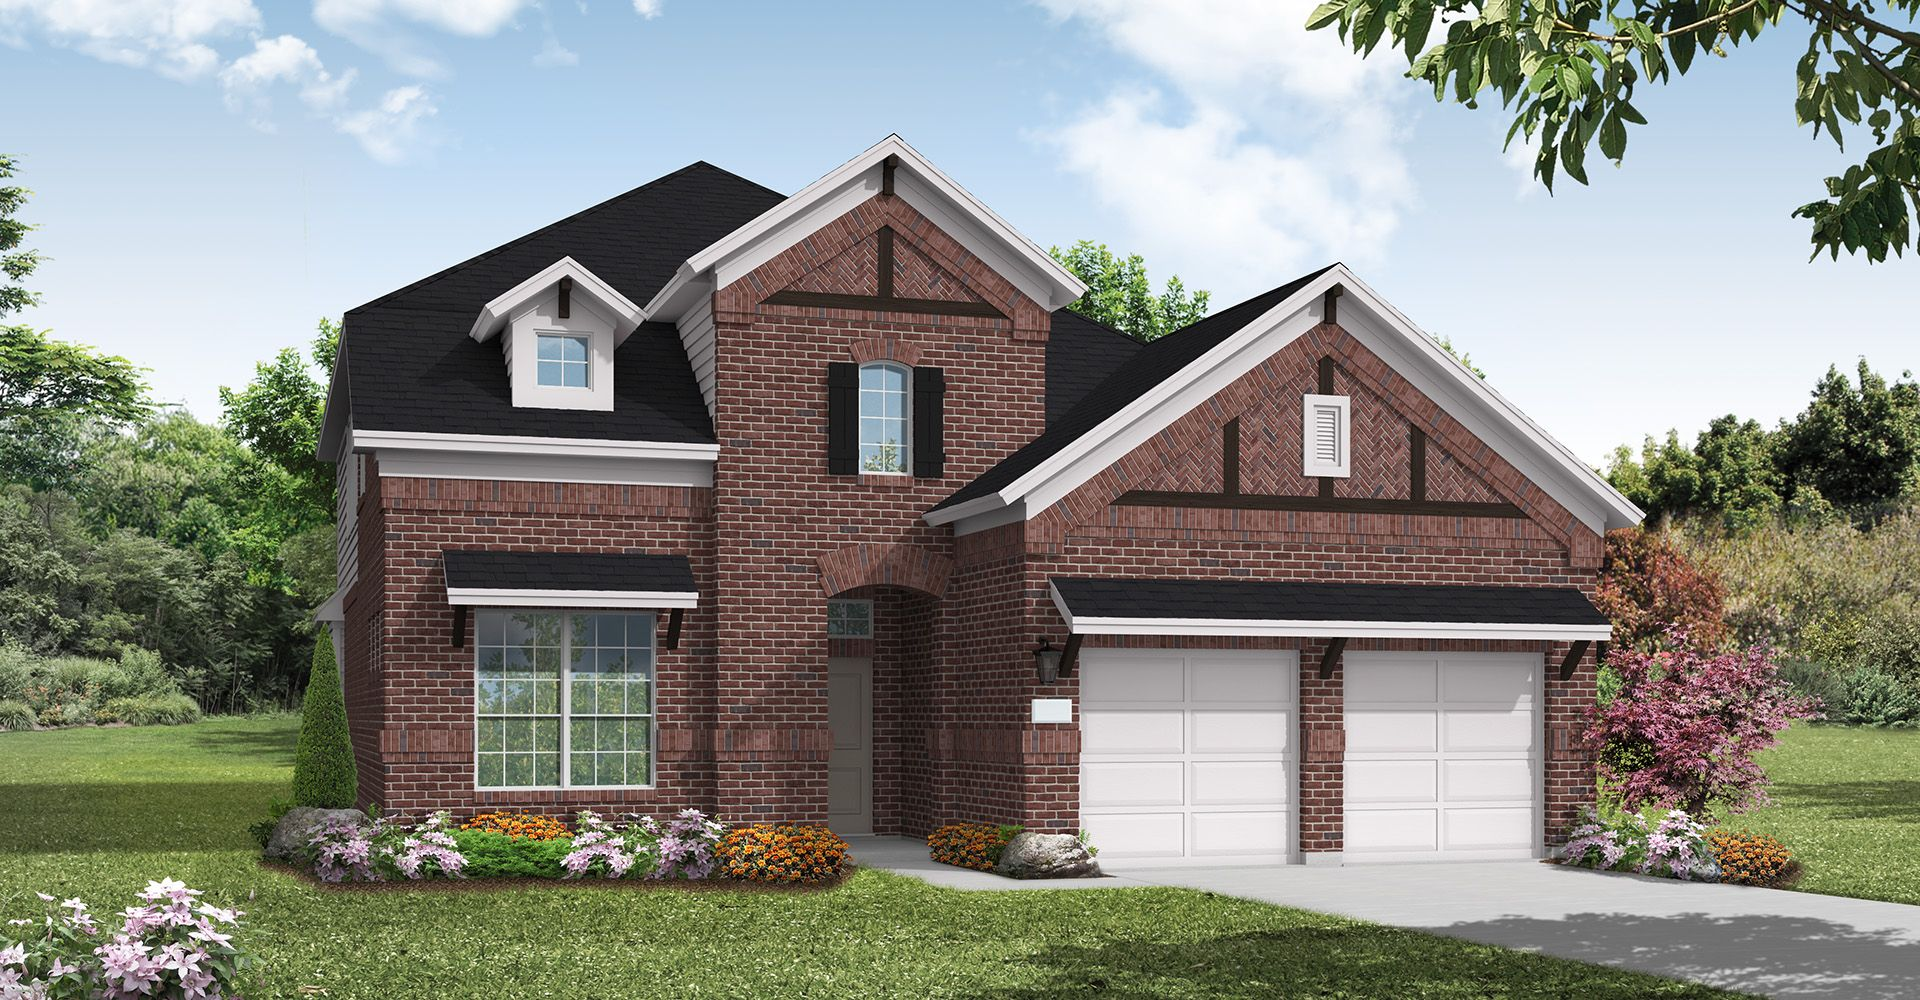 Exterior featured in the Baylor Creek By Coventry Homes in Dallas, TX